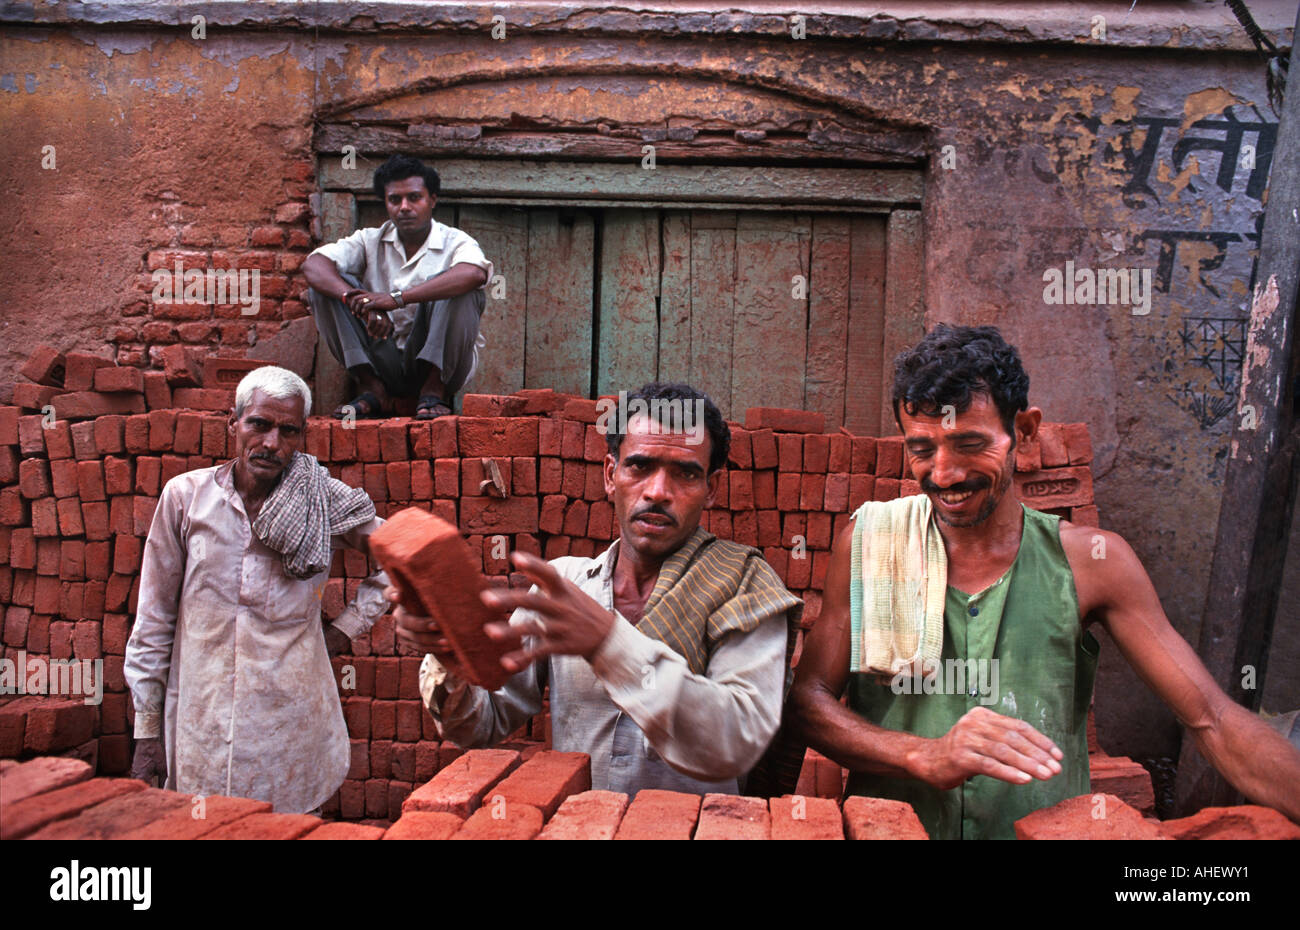 Busy Chandri Chowk area of central Delhi Bricklayers among stacks of bricks in the market area India - Stock Image